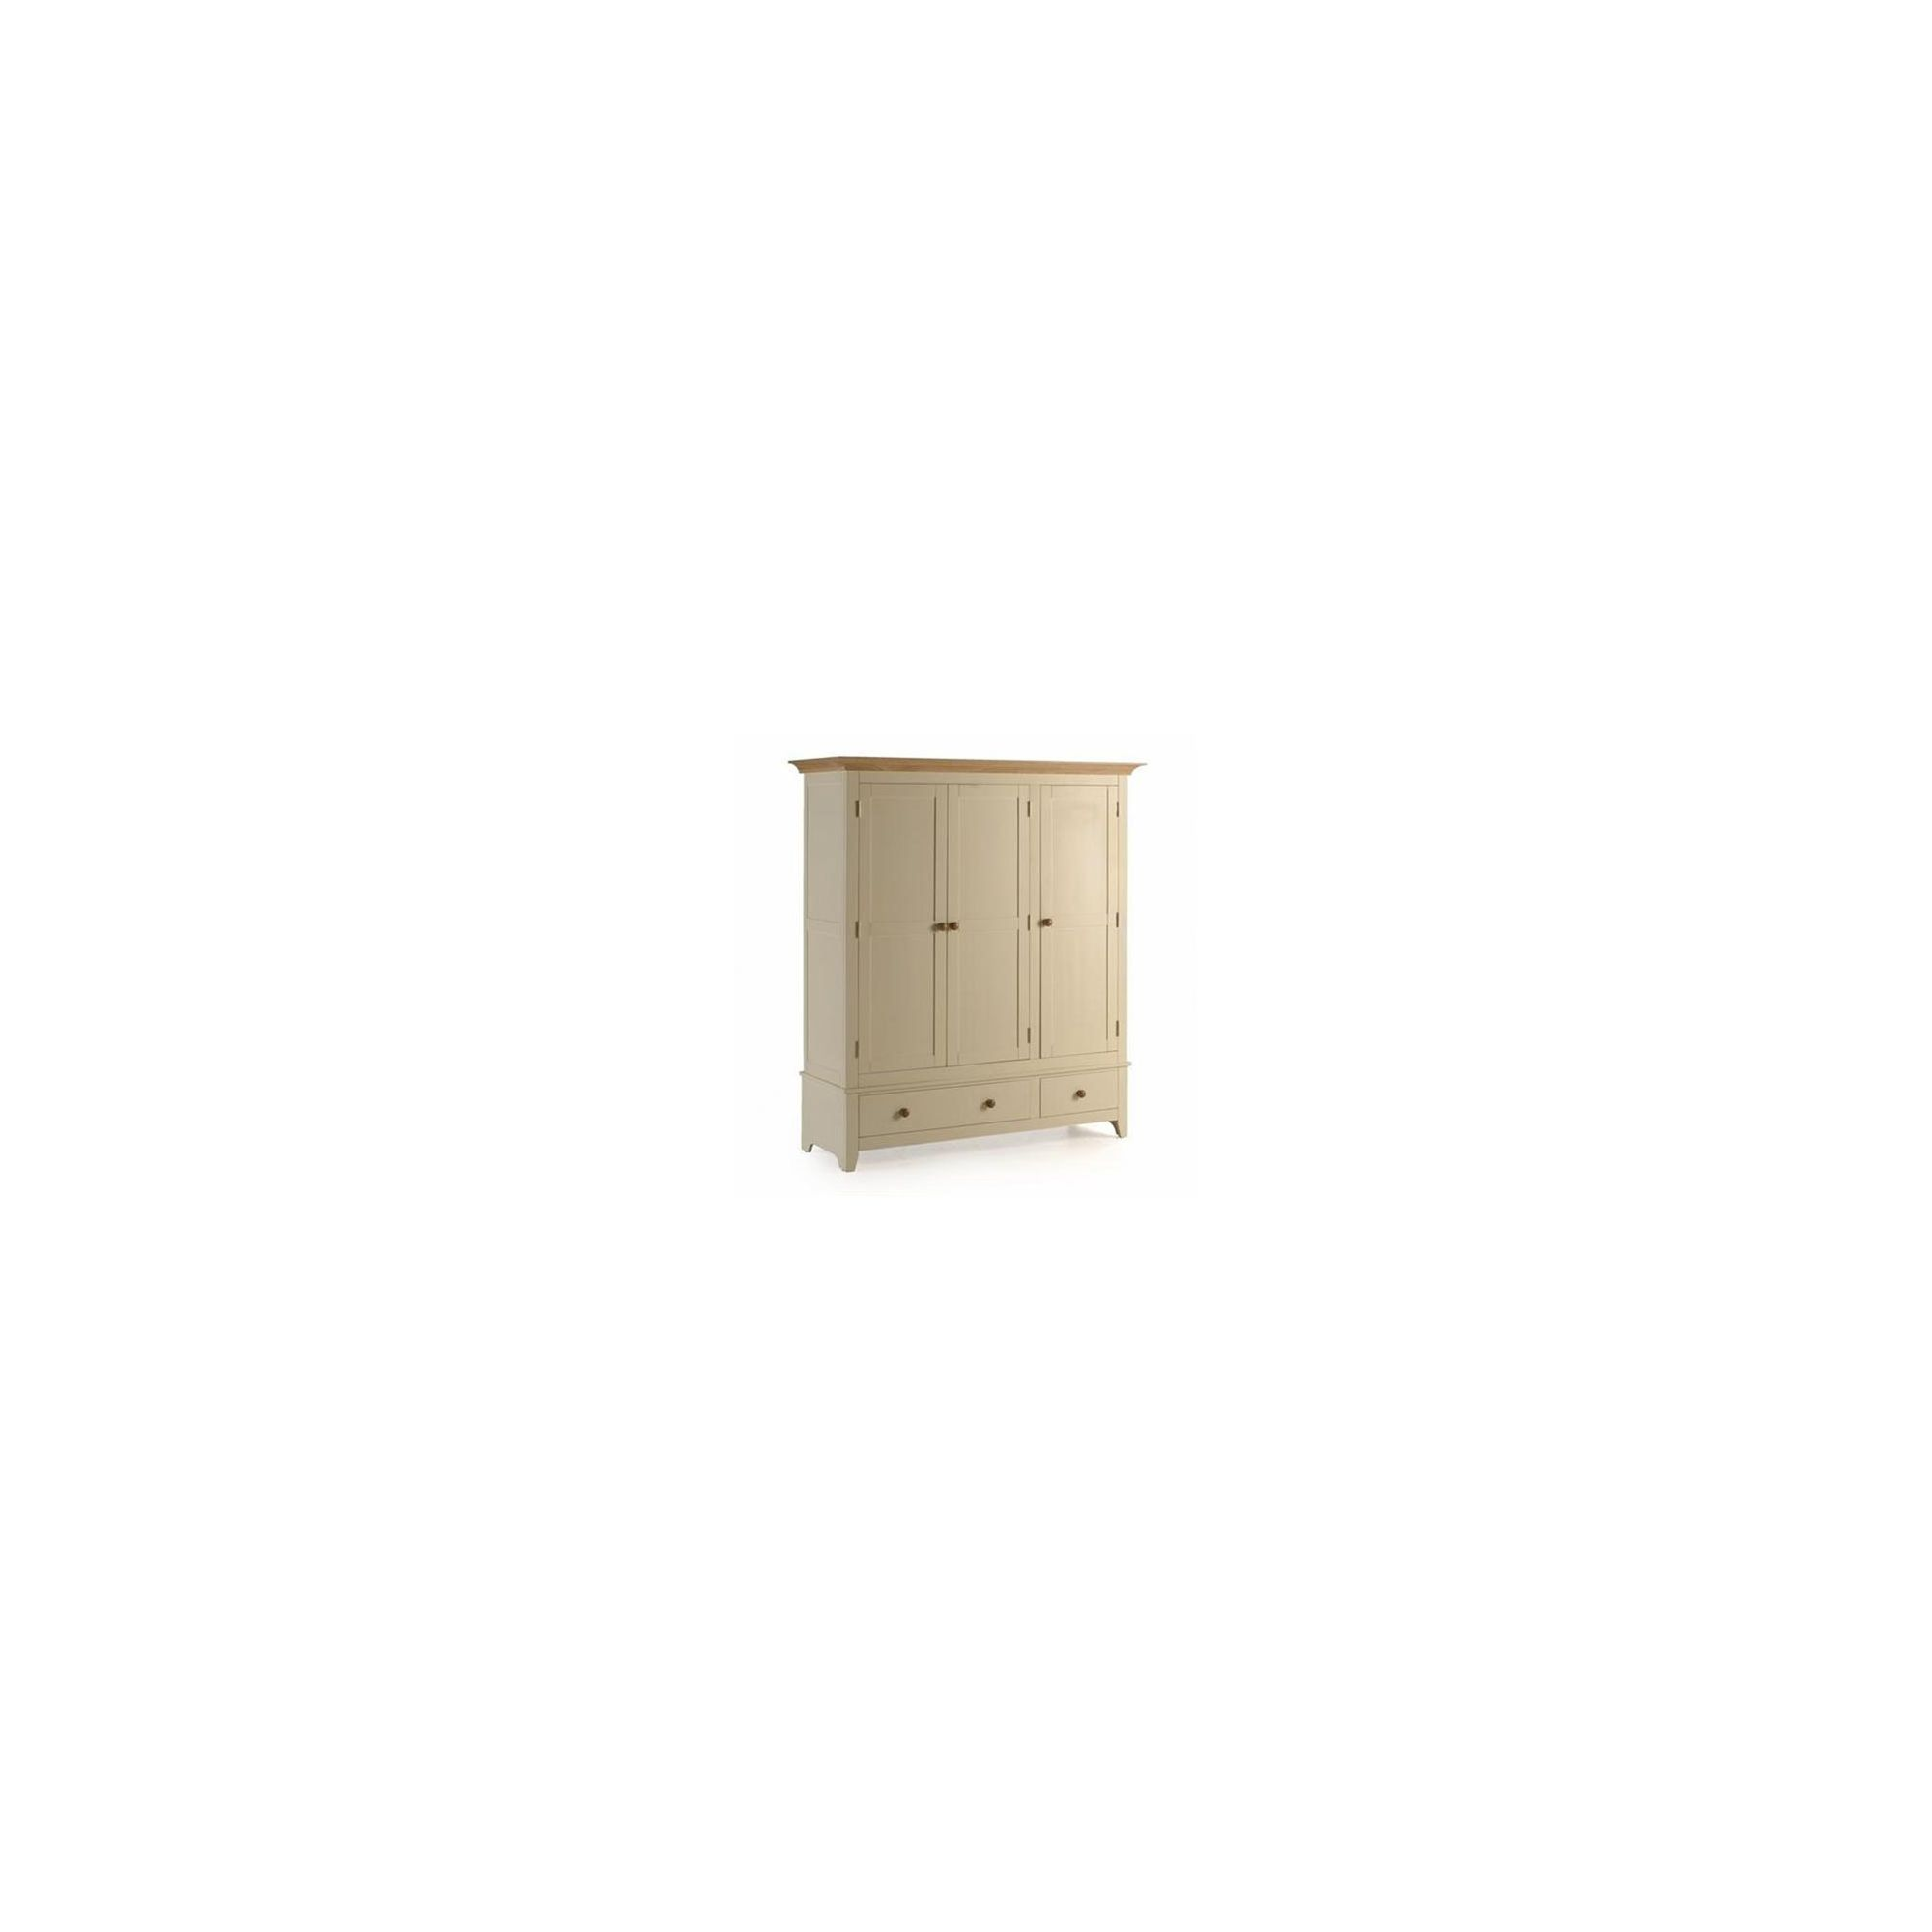 Ametis Camden Painted Pine and Ash Two Drawer Wardrobe in Painted Ivory - 118cm at Tesco Direct